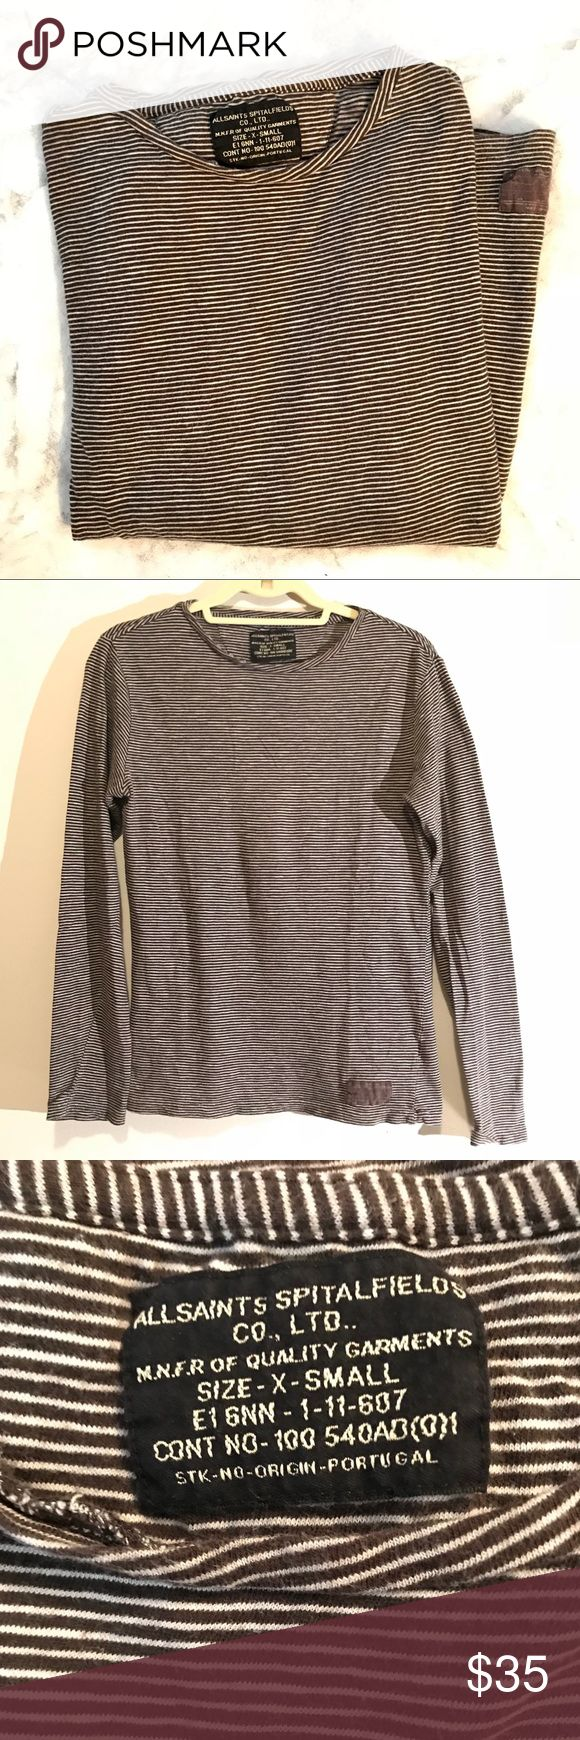 AllSaints Long Sleeve All Saints Spitalfields — Long Sleeve Tee — Brown/Cream Stripes — Excellent Condition, extremely comfortable — Size: Extra Small (Runs large) All Saints Tops Tees - Long Sleeve